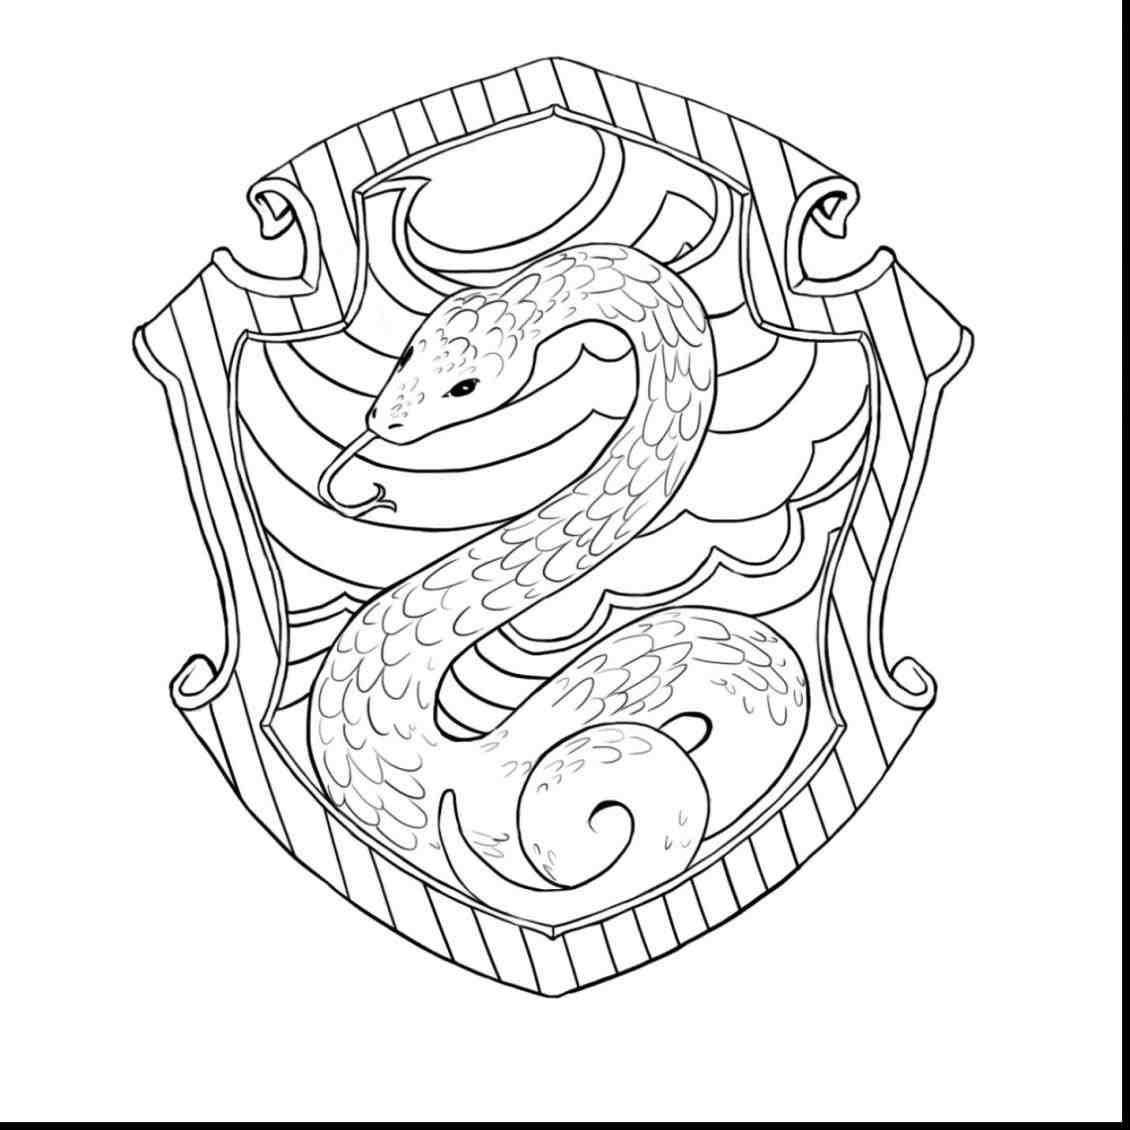 1130x1130 Harry Potter Coloring Pages Quidditch Web Coloring Pages